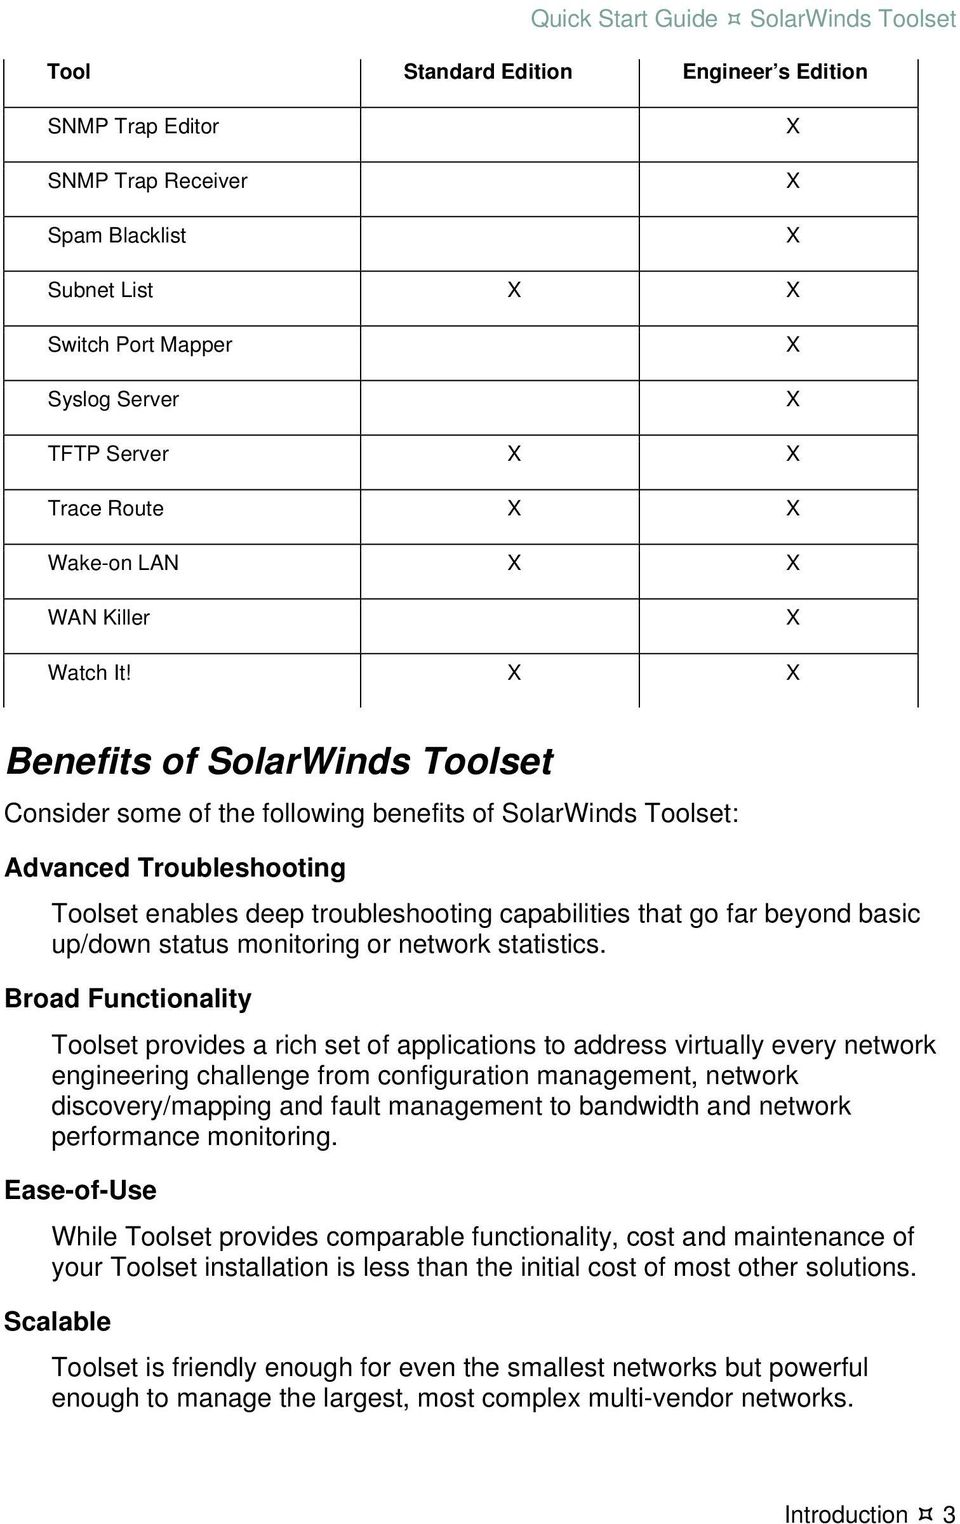 Benefits of SolarWinds Toolset Consider some of the following benefits of SolarWinds Toolset: Advanced Troubleshooting Toolset enables deep troubleshooting capabilities that go far beyond basic